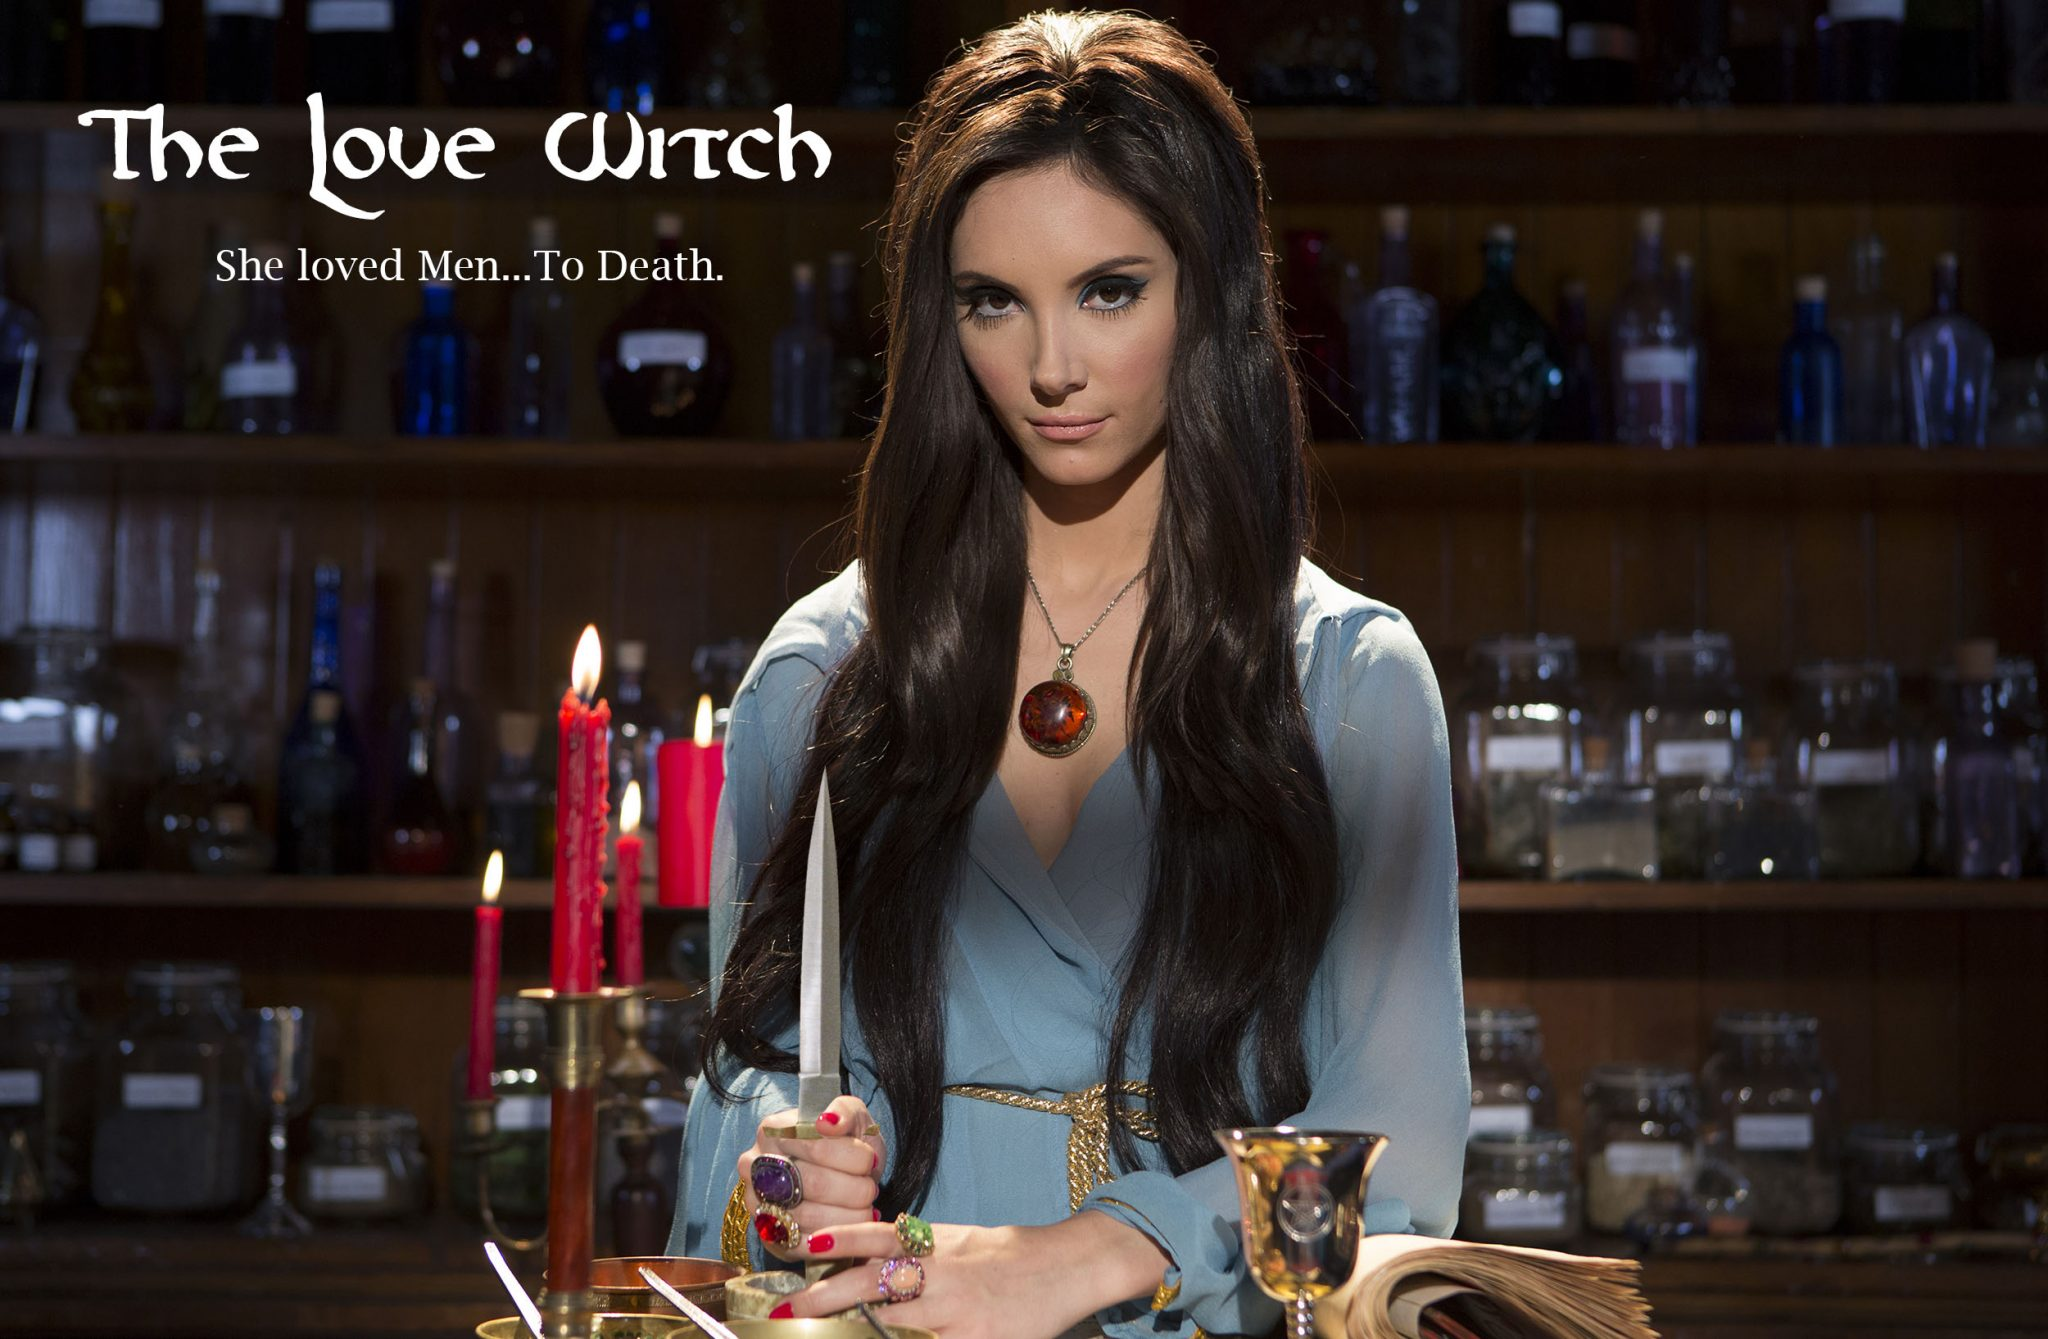 The love witch 2 - Exclusive: Director Anna Biller Talks The Love Witch